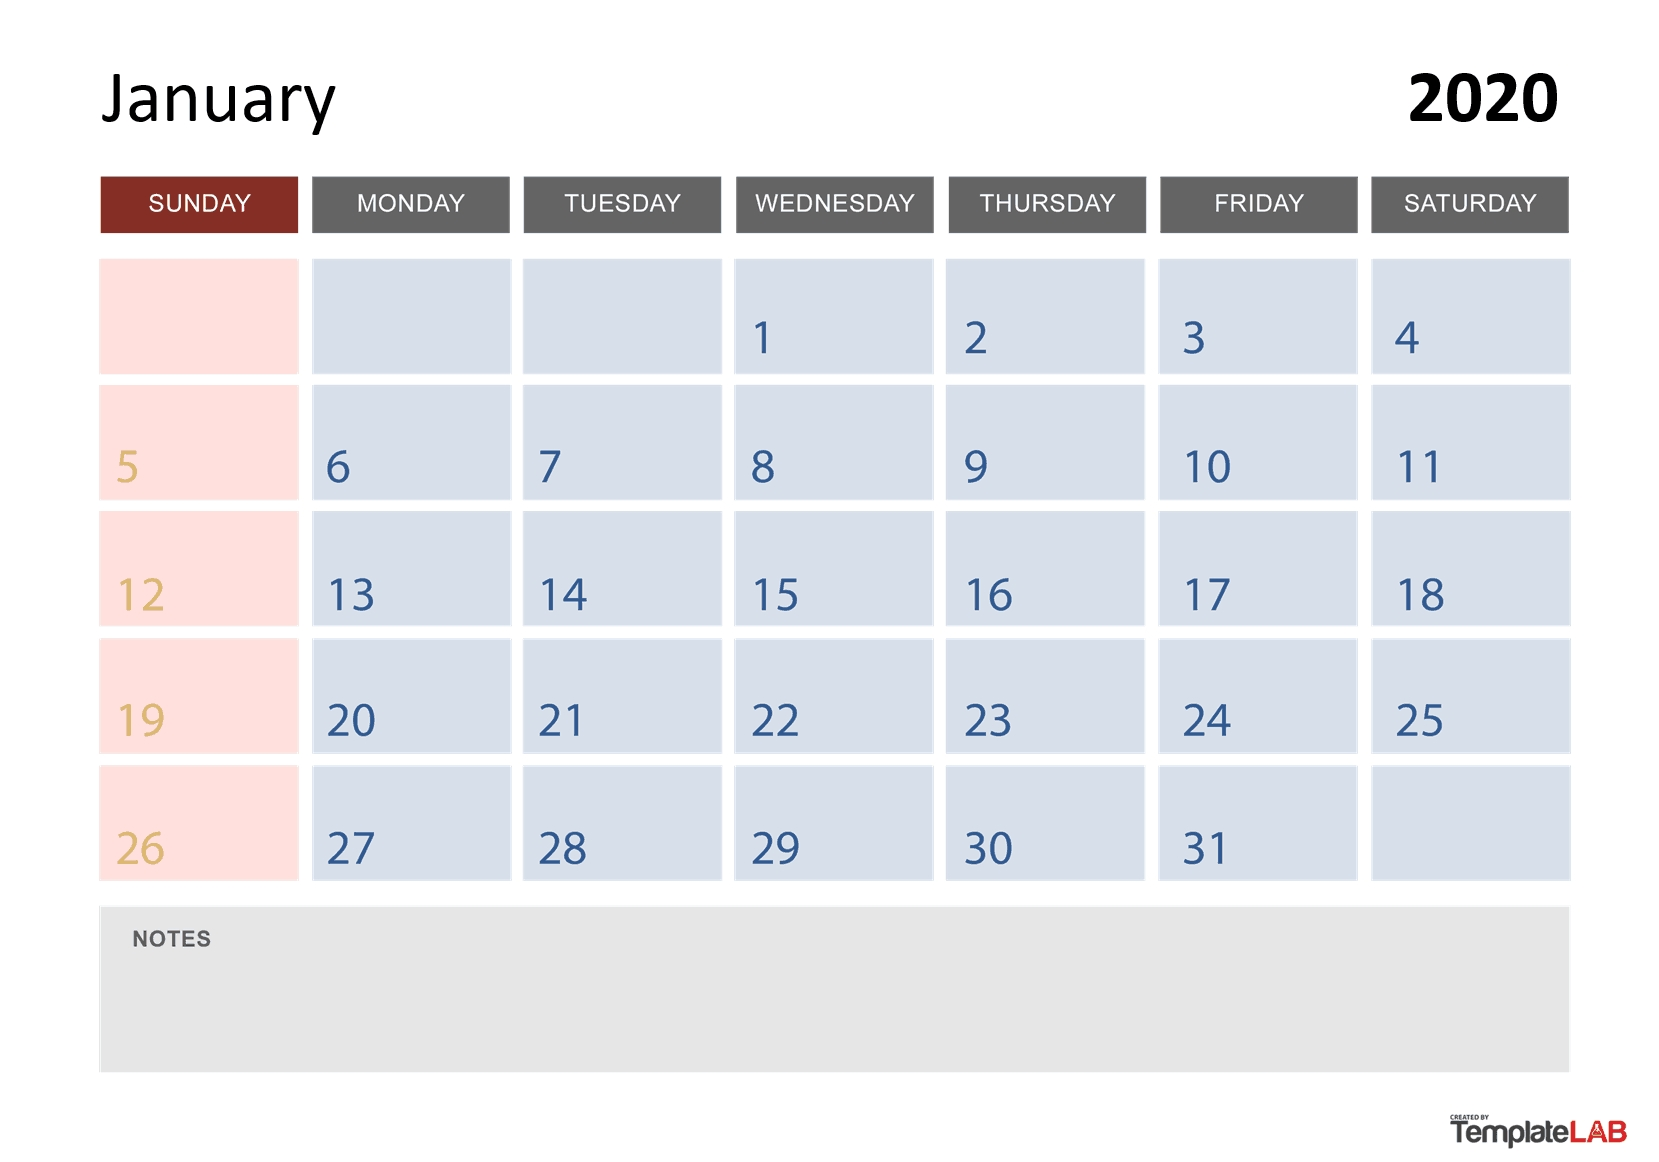 2020 Printable Calendars [Monthly, With Holidays, Yearly] ᐅ-Blank 2020 Calendar Month By Month